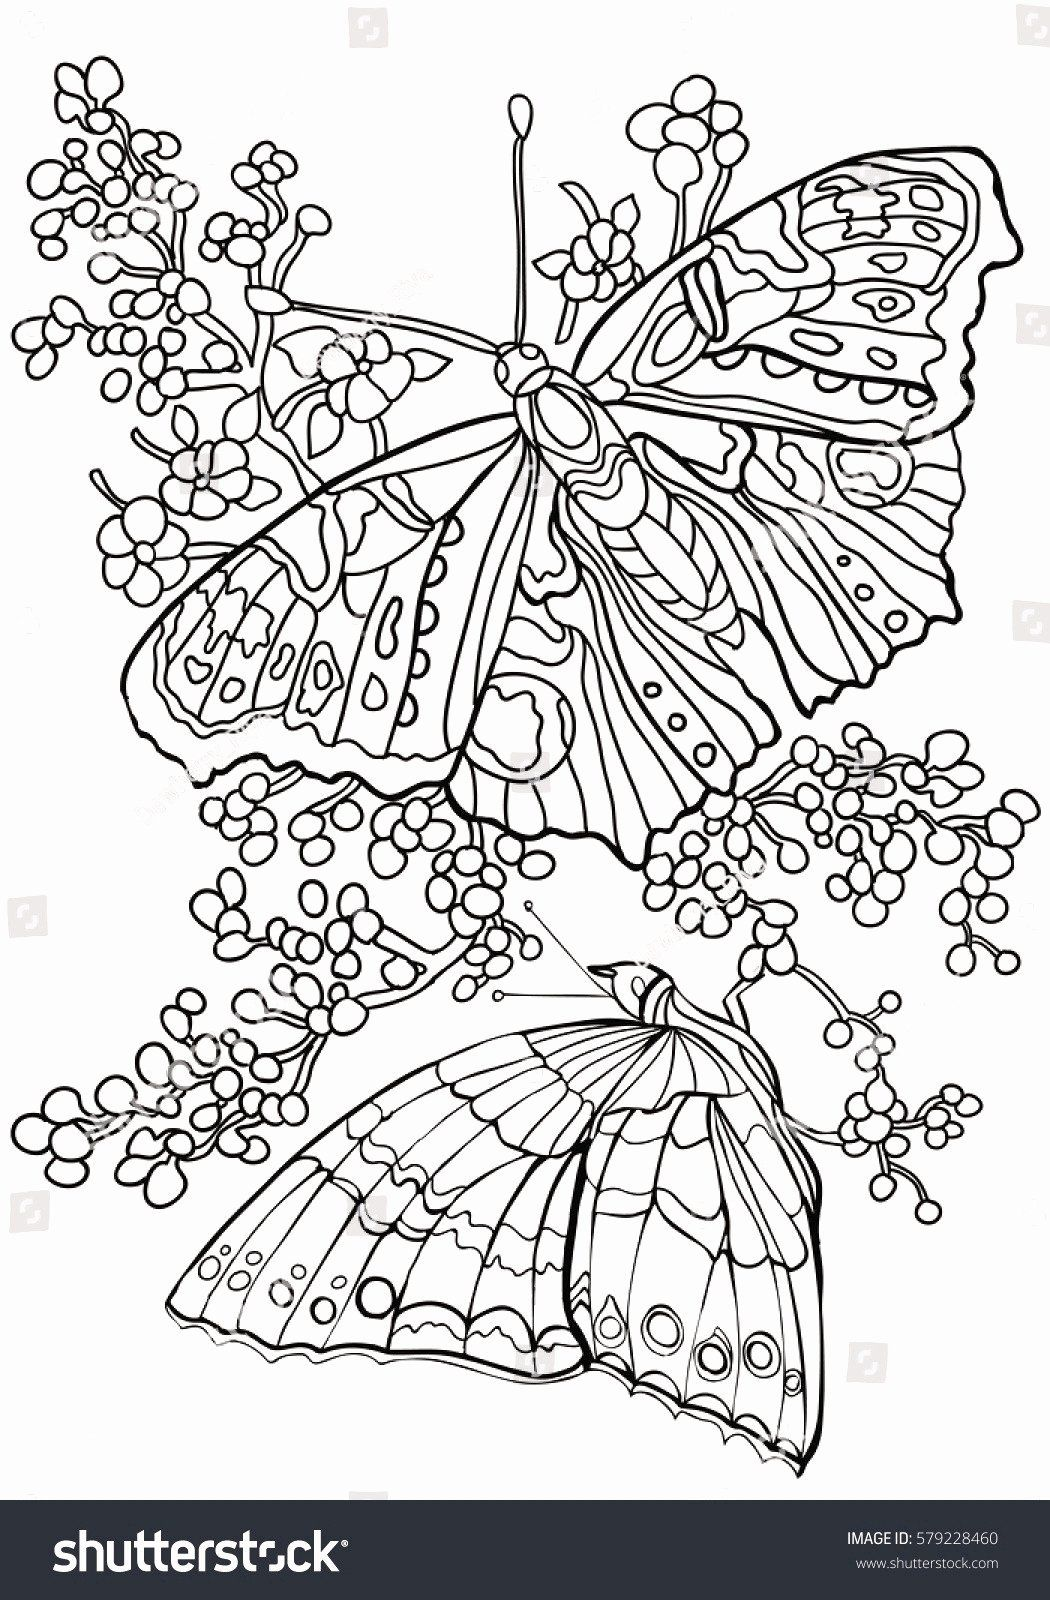 Pin By Kimberly Madrid On Butterflies Butterfly Coloring Page Coloring Book Pages Geometric Coloring Pages [ 1600 x 1050 Pixel ]